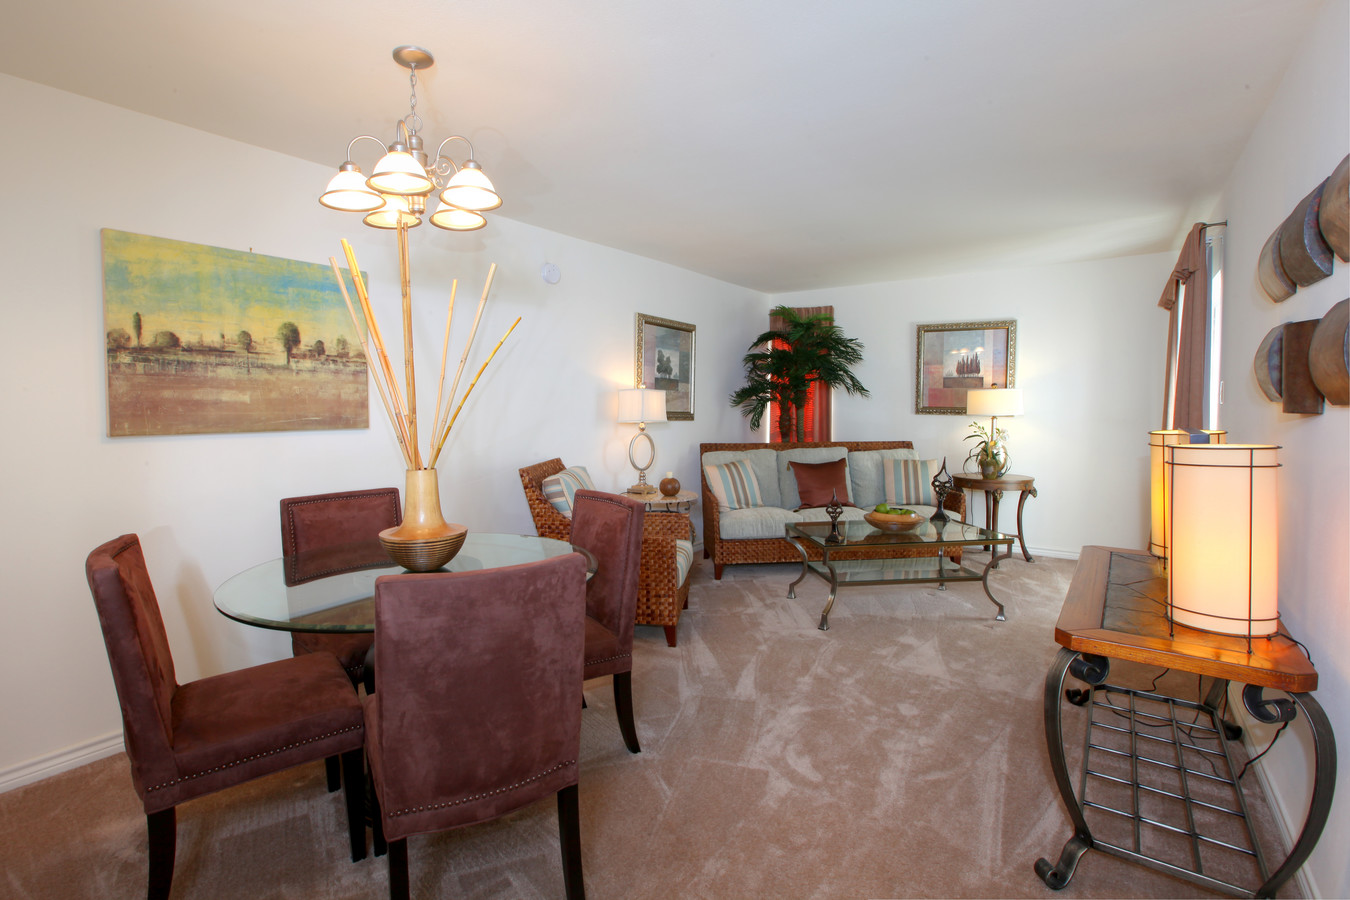 houses for rent in metairie la